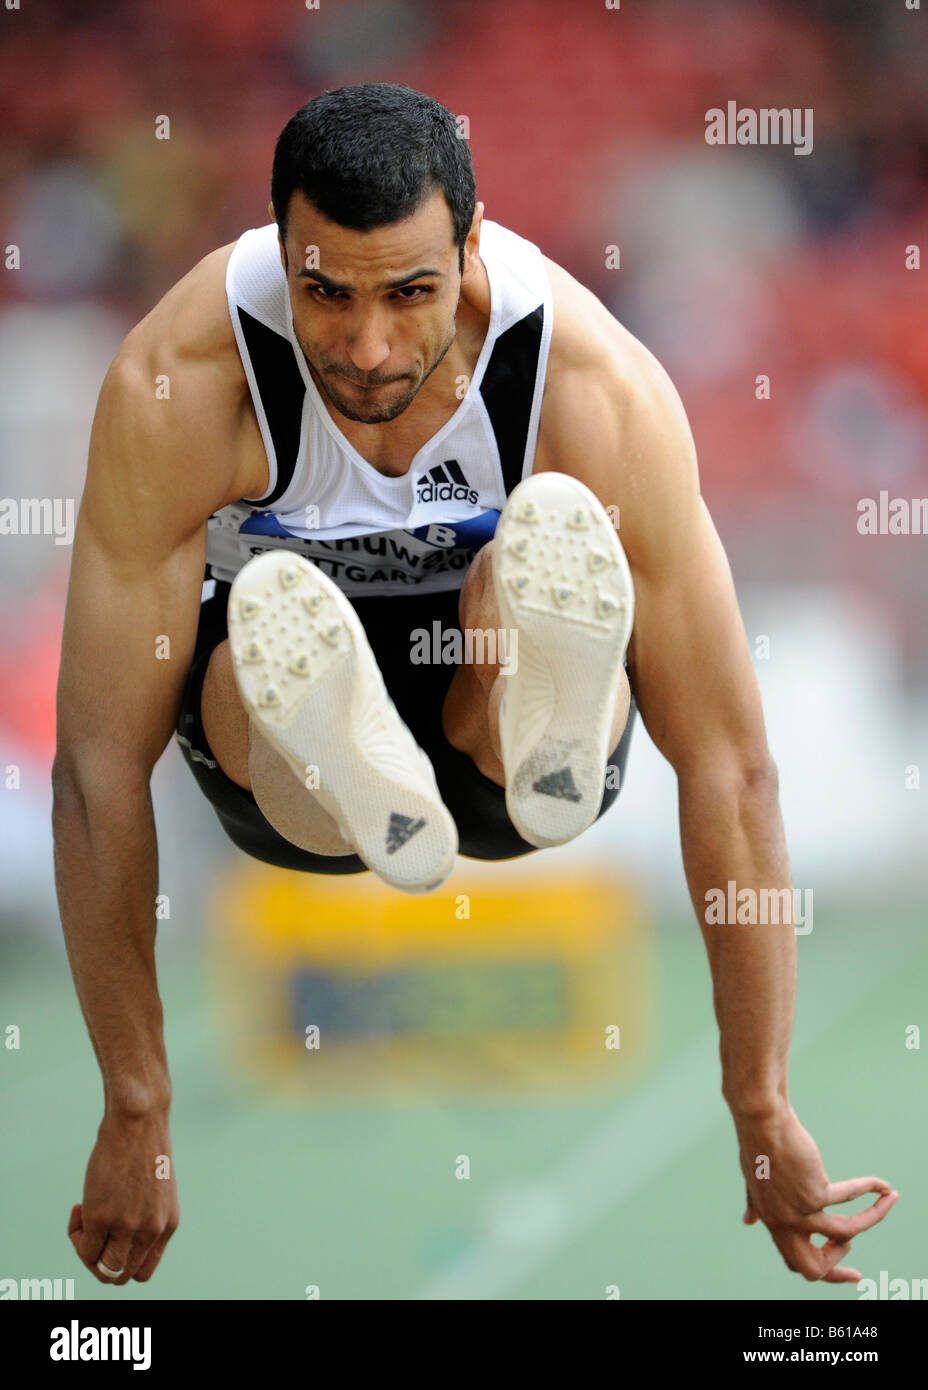 Hussein Taher AL-SABEE, KSA, long jump, at the IAAF 2008 World Athletics Final for track and field in the Mercedes - Stock Image